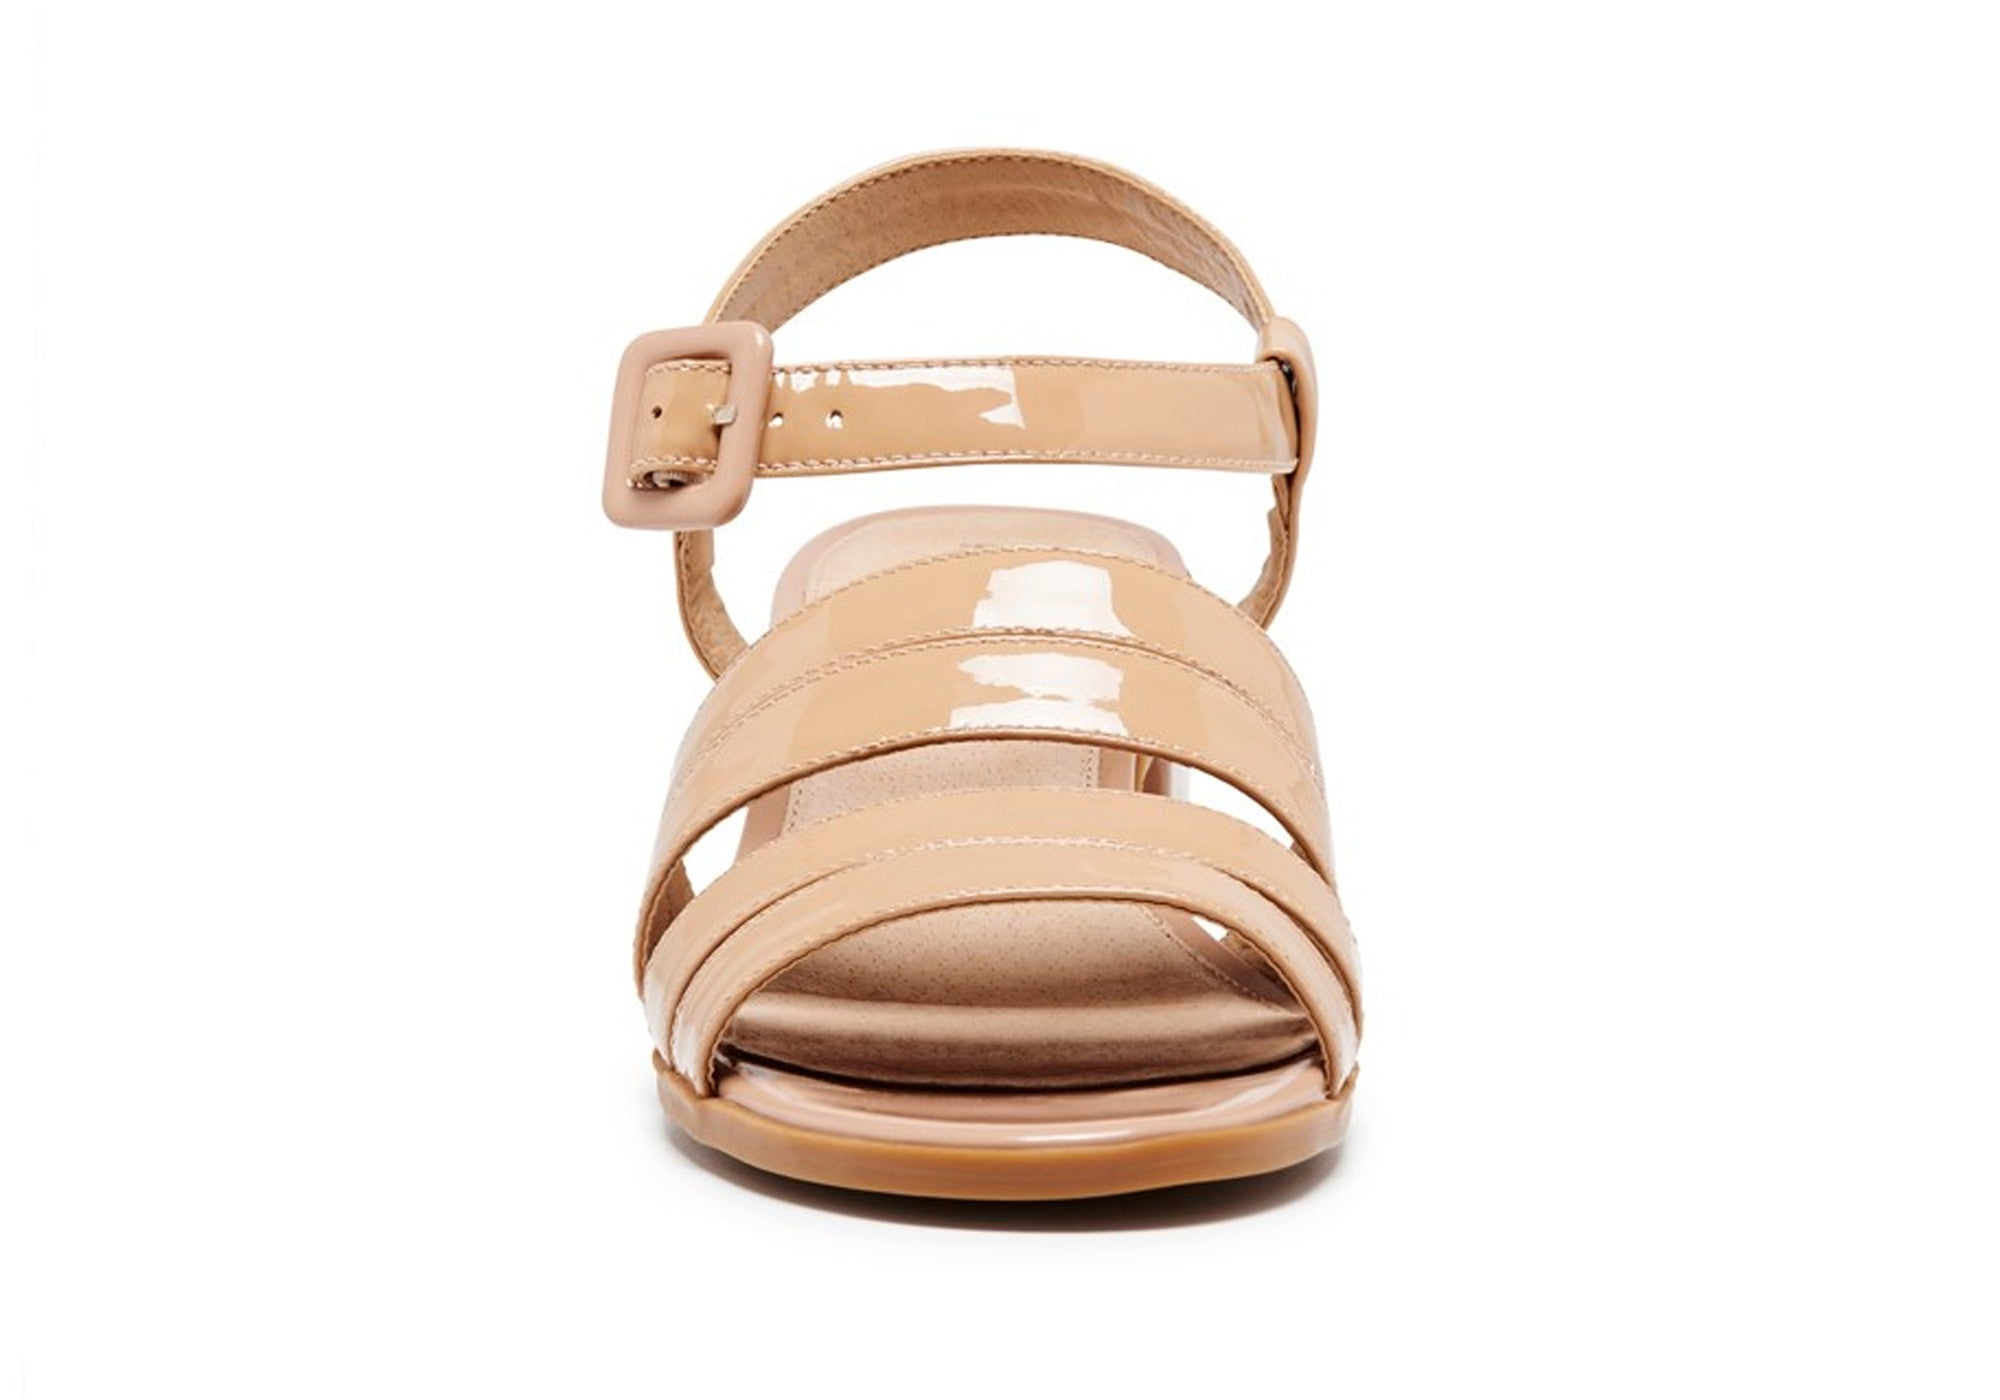 Hush Puppies Katniss Womens Leather Block Heel Sandals